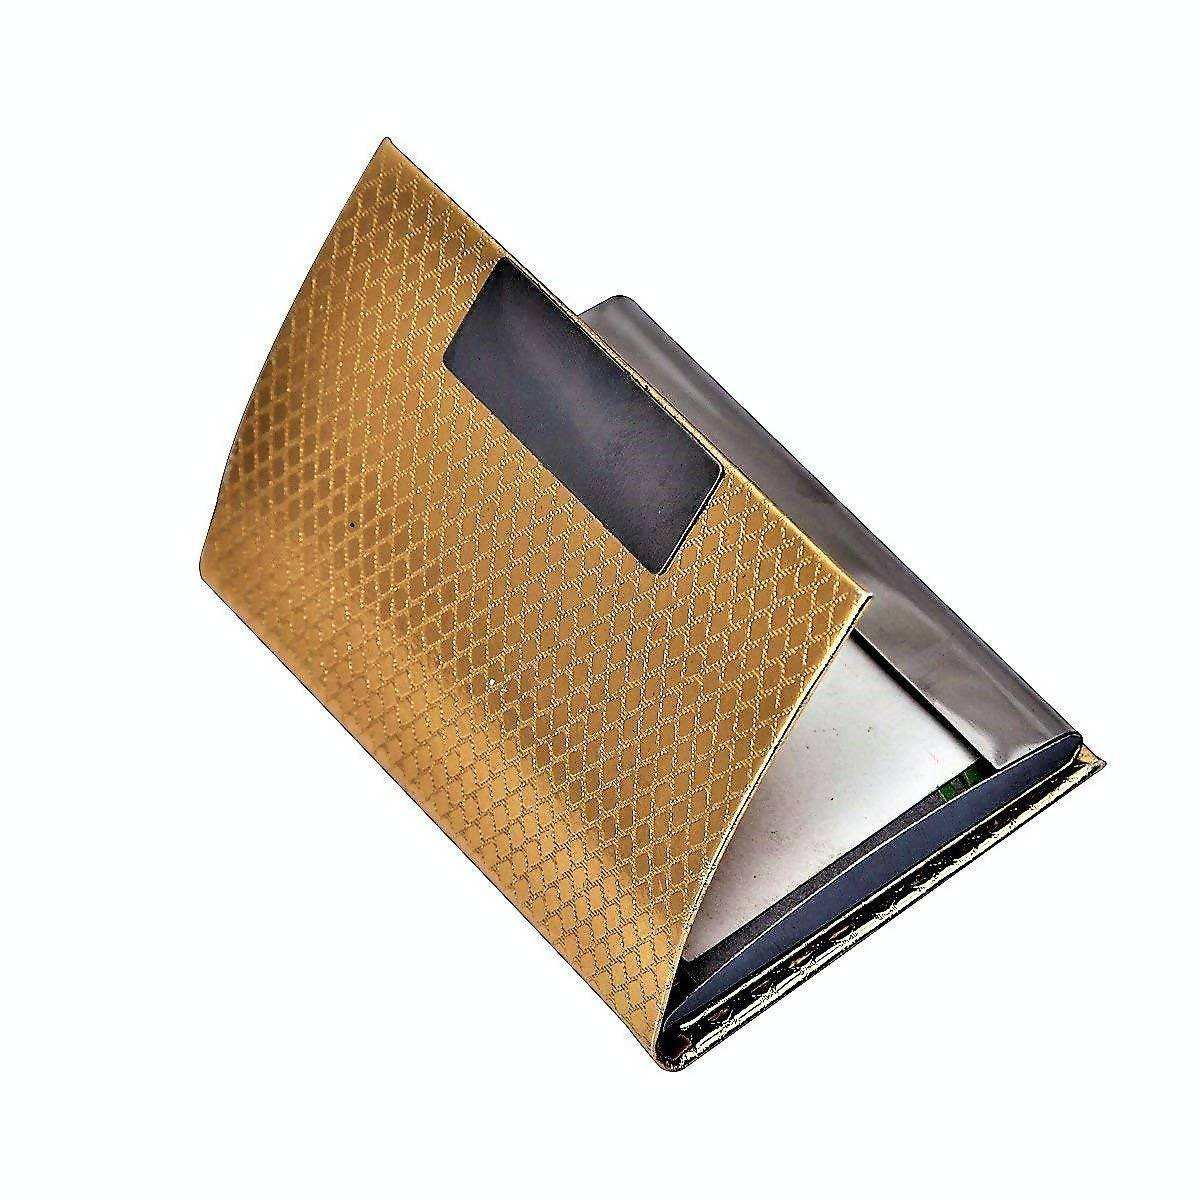 Gold Plated Pen And Gold Plated Visiting Card Holder And Gold Plated